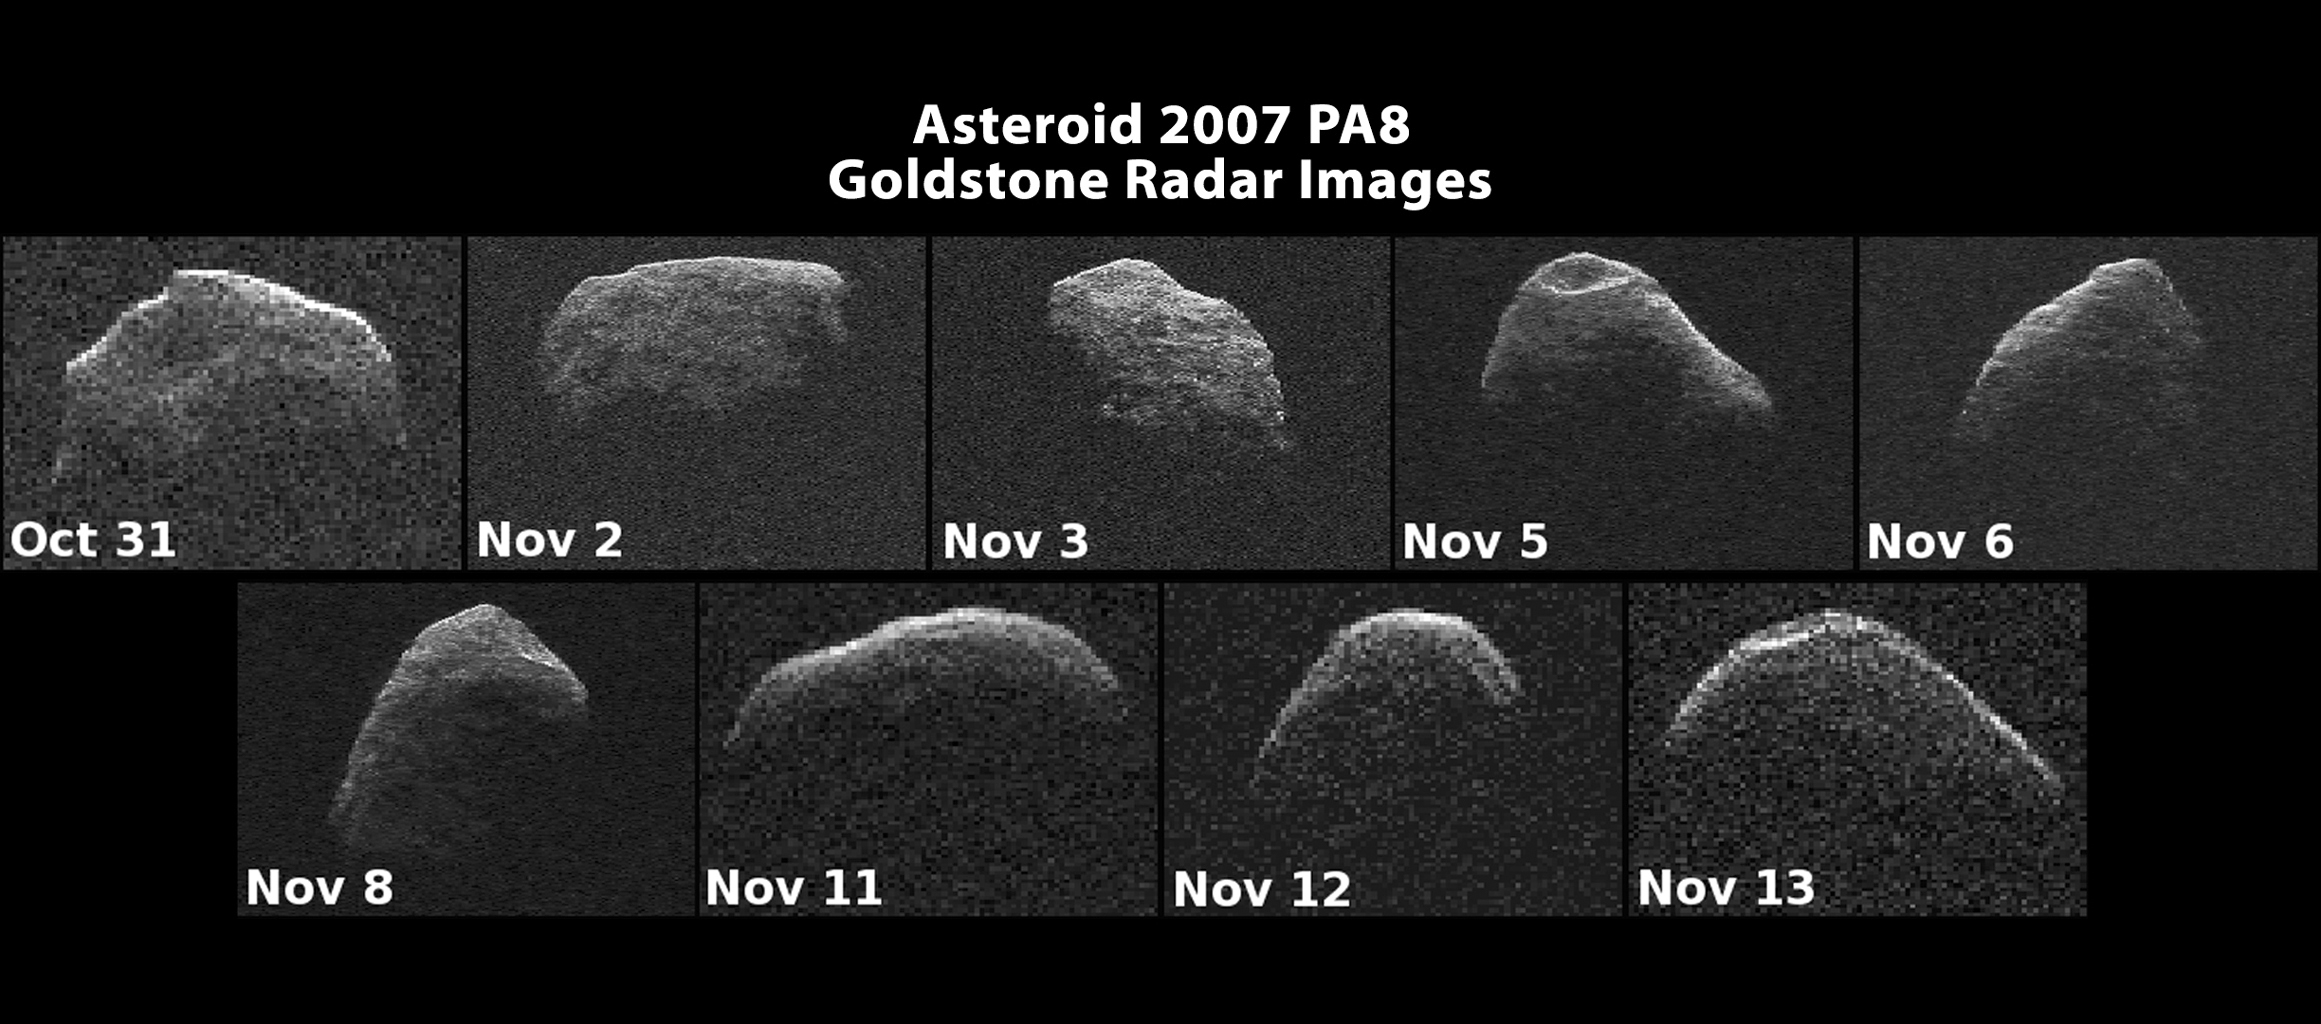 Images of asteroid 2007 PA8 have been generated with data collected by NASA's Goldstone Solar System Radar. The images of 2007 PA8 reveal possible craters, boulders, an irregular, asymmetric shape, and very slow rotation.